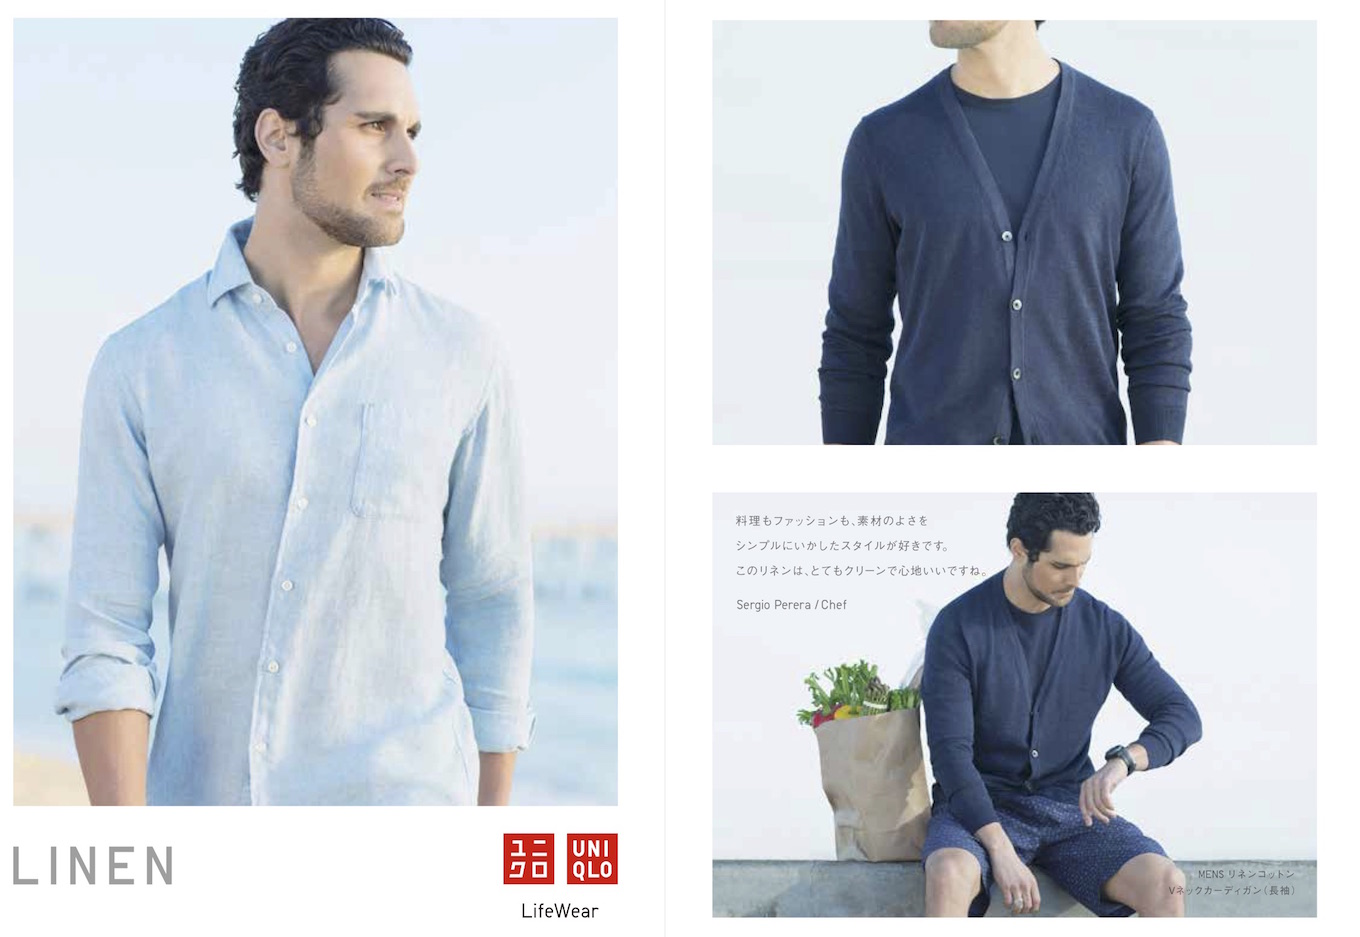 Uniqlo copy